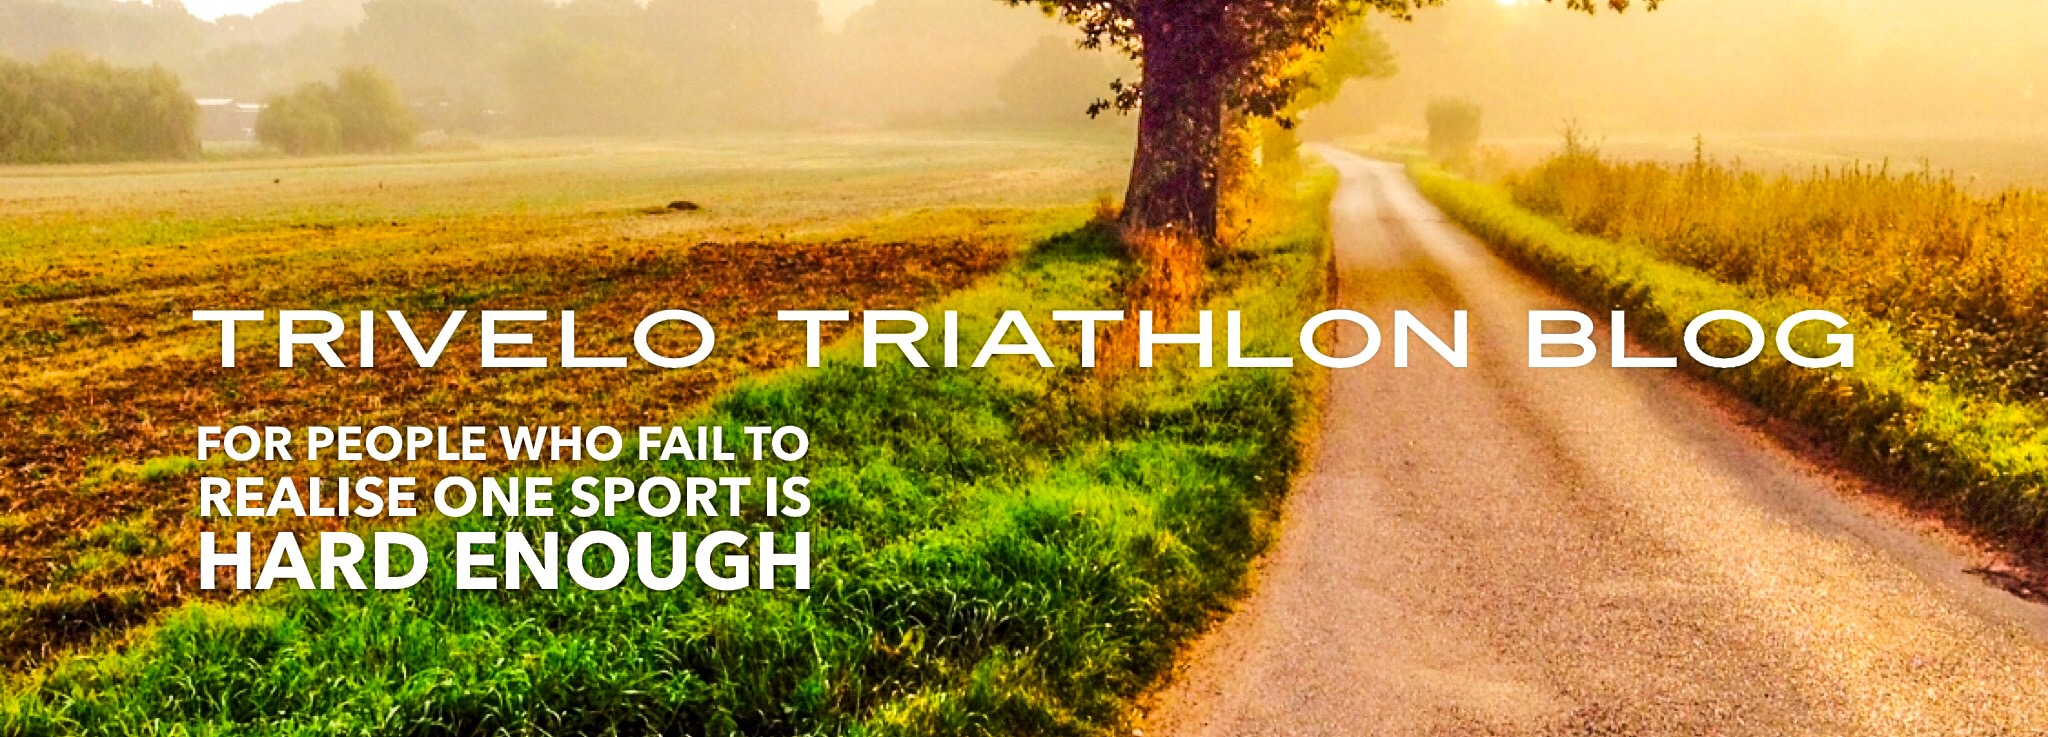 Trivelo Triathlon Blog